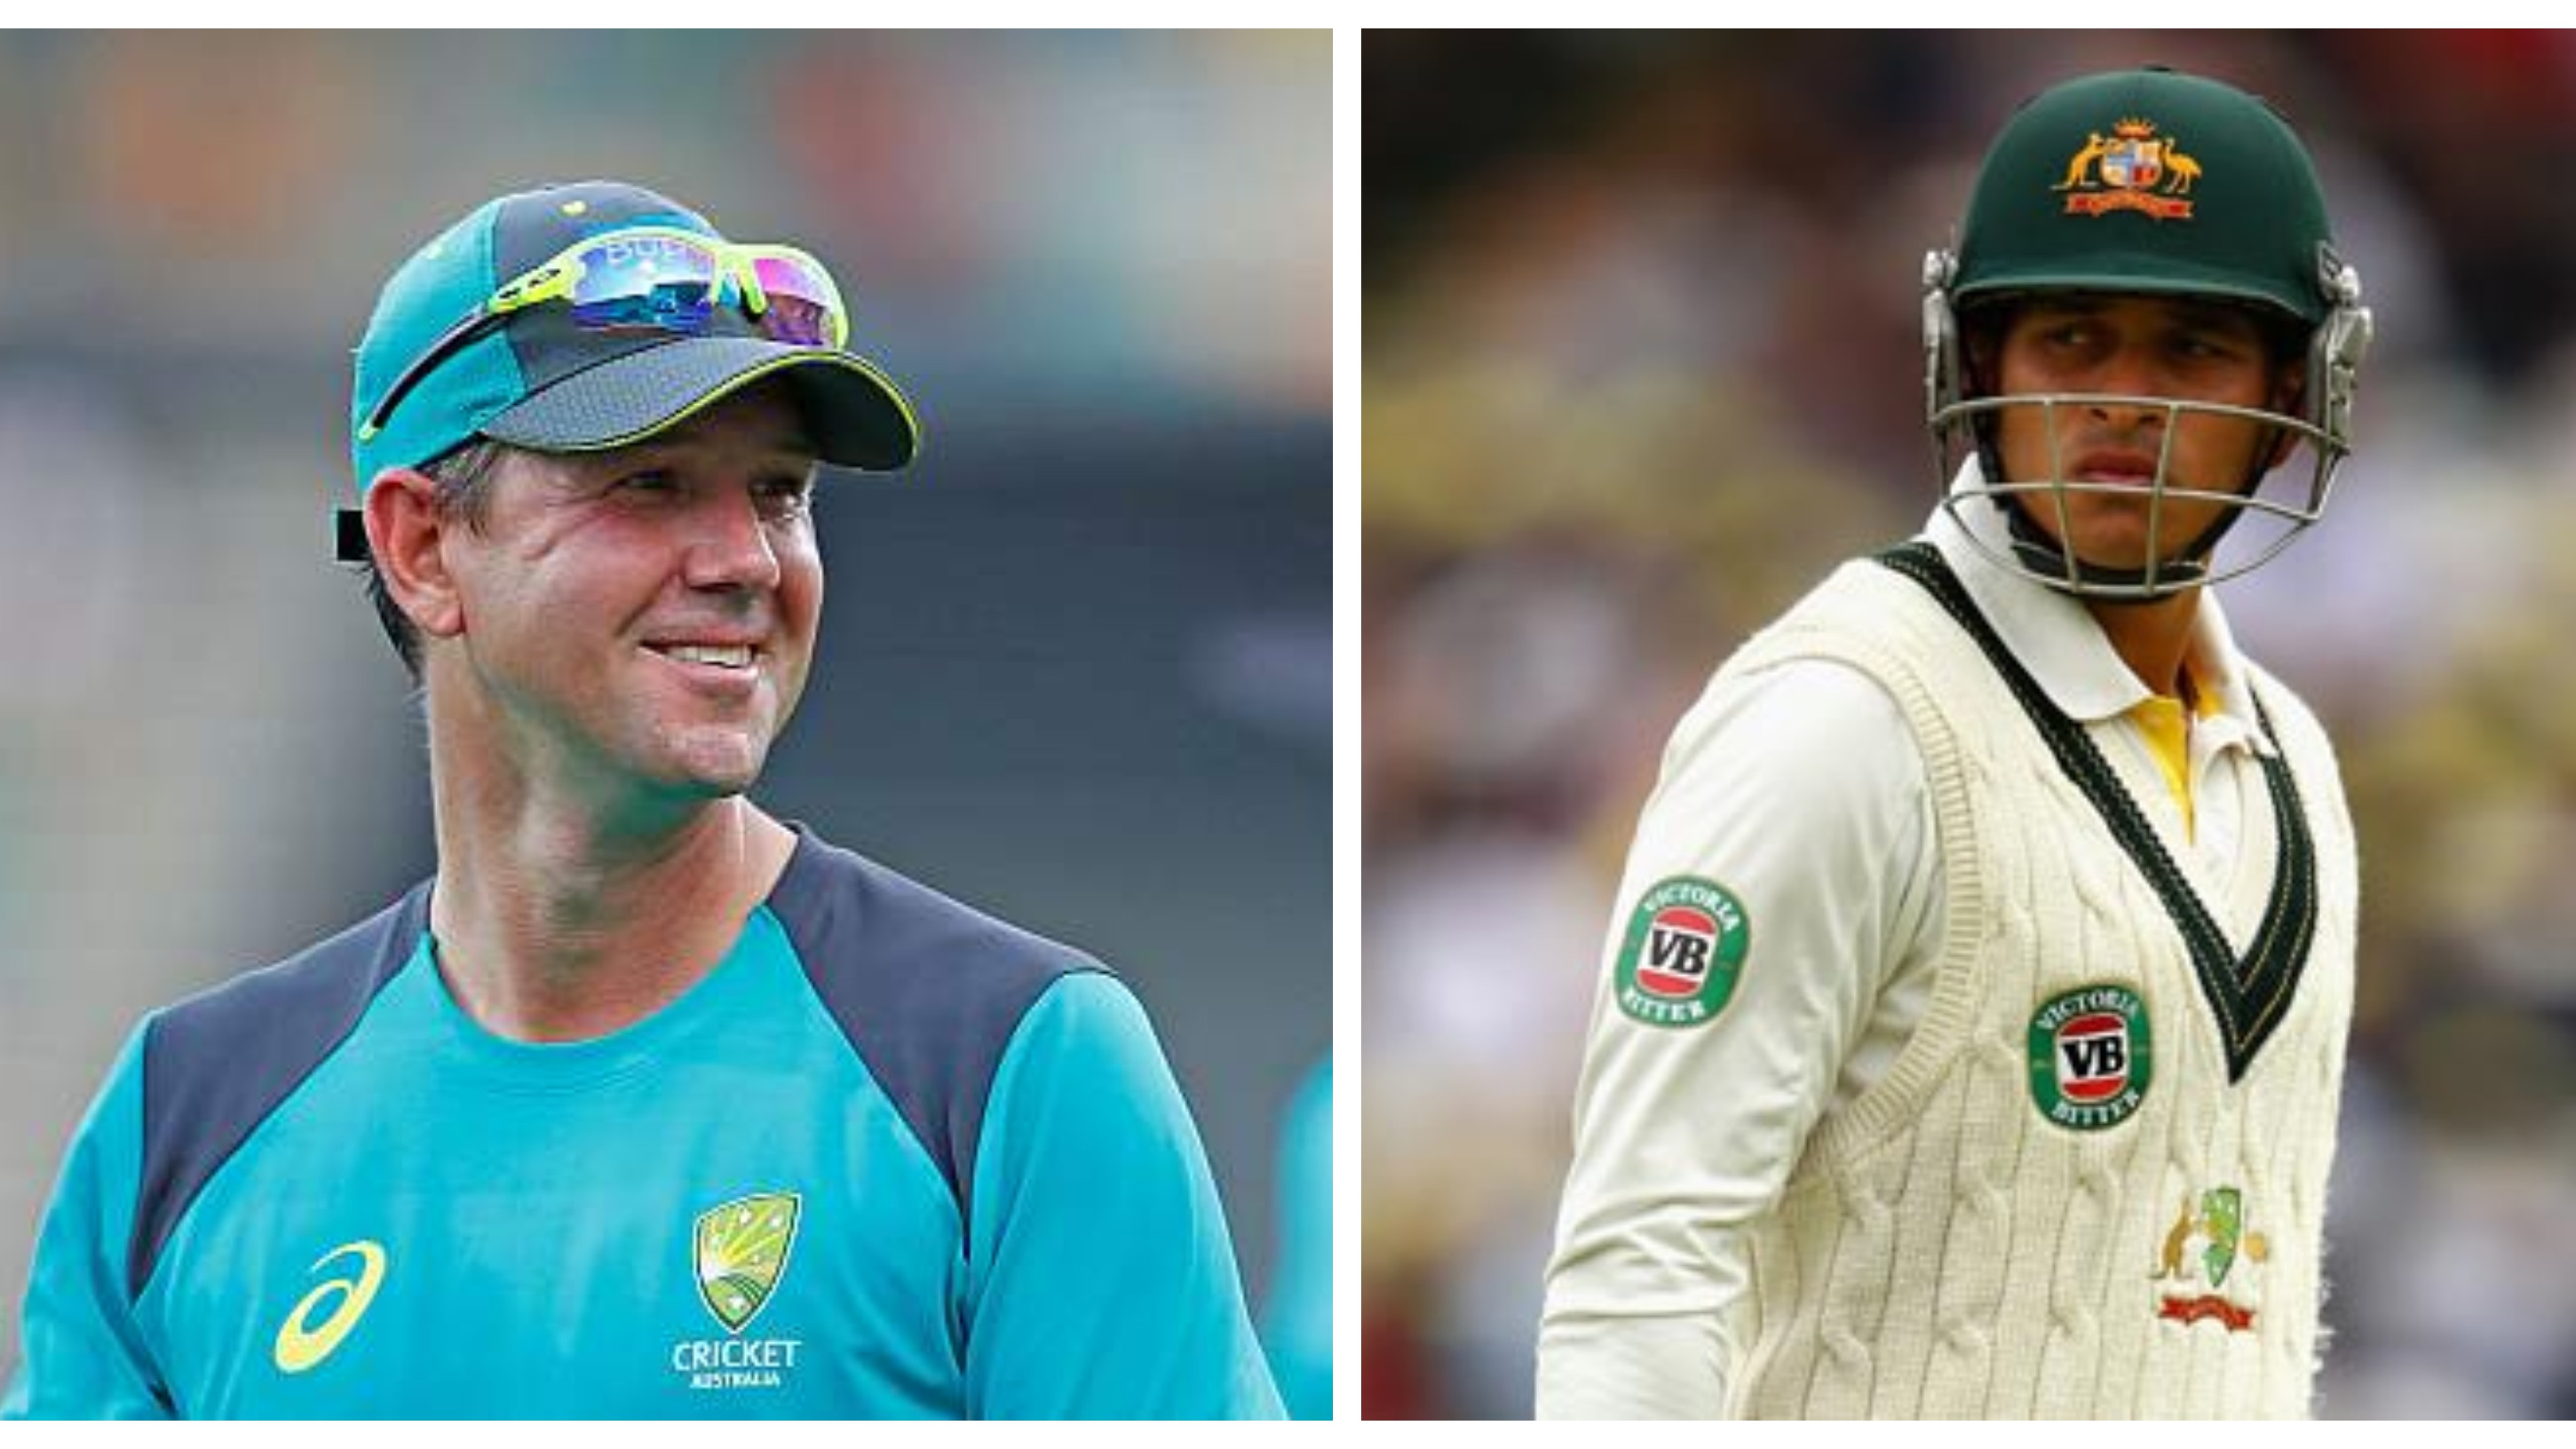 PAK vs AUS 2018: Ricky Ponting endorses Usman Khawaja's inclusion in the playing XI